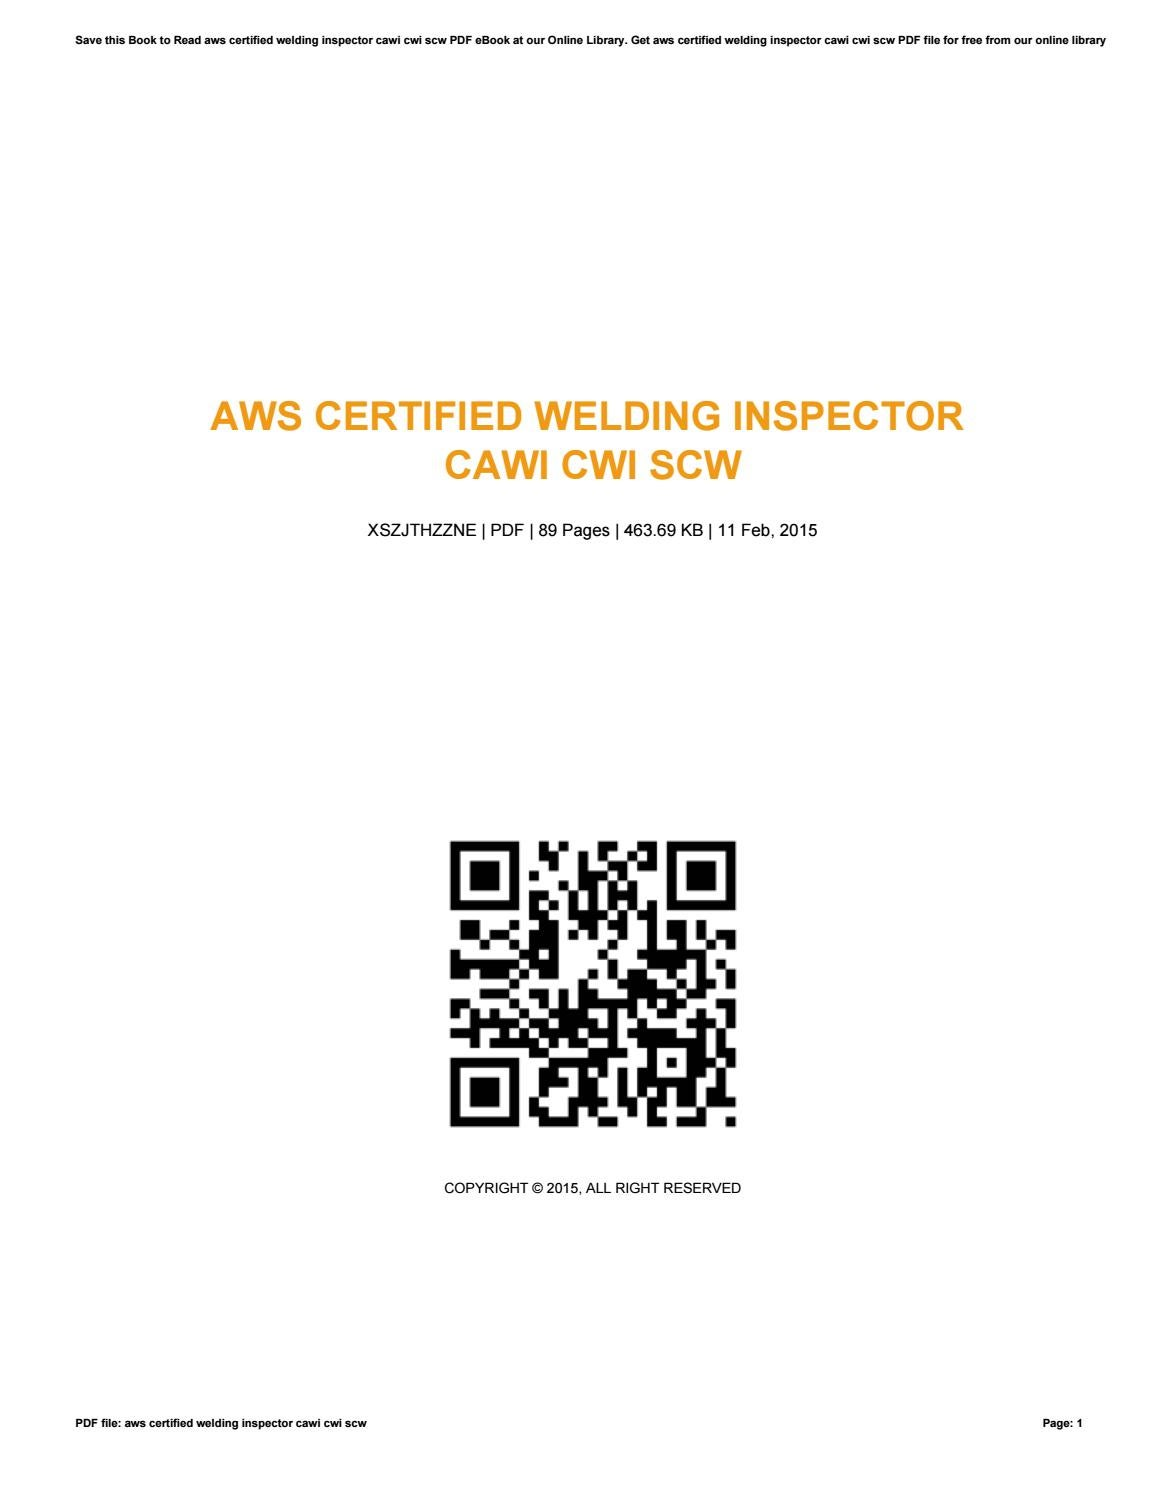 Ebook 6760 Certification Manual For Welding Inspectors 2019 Ebook